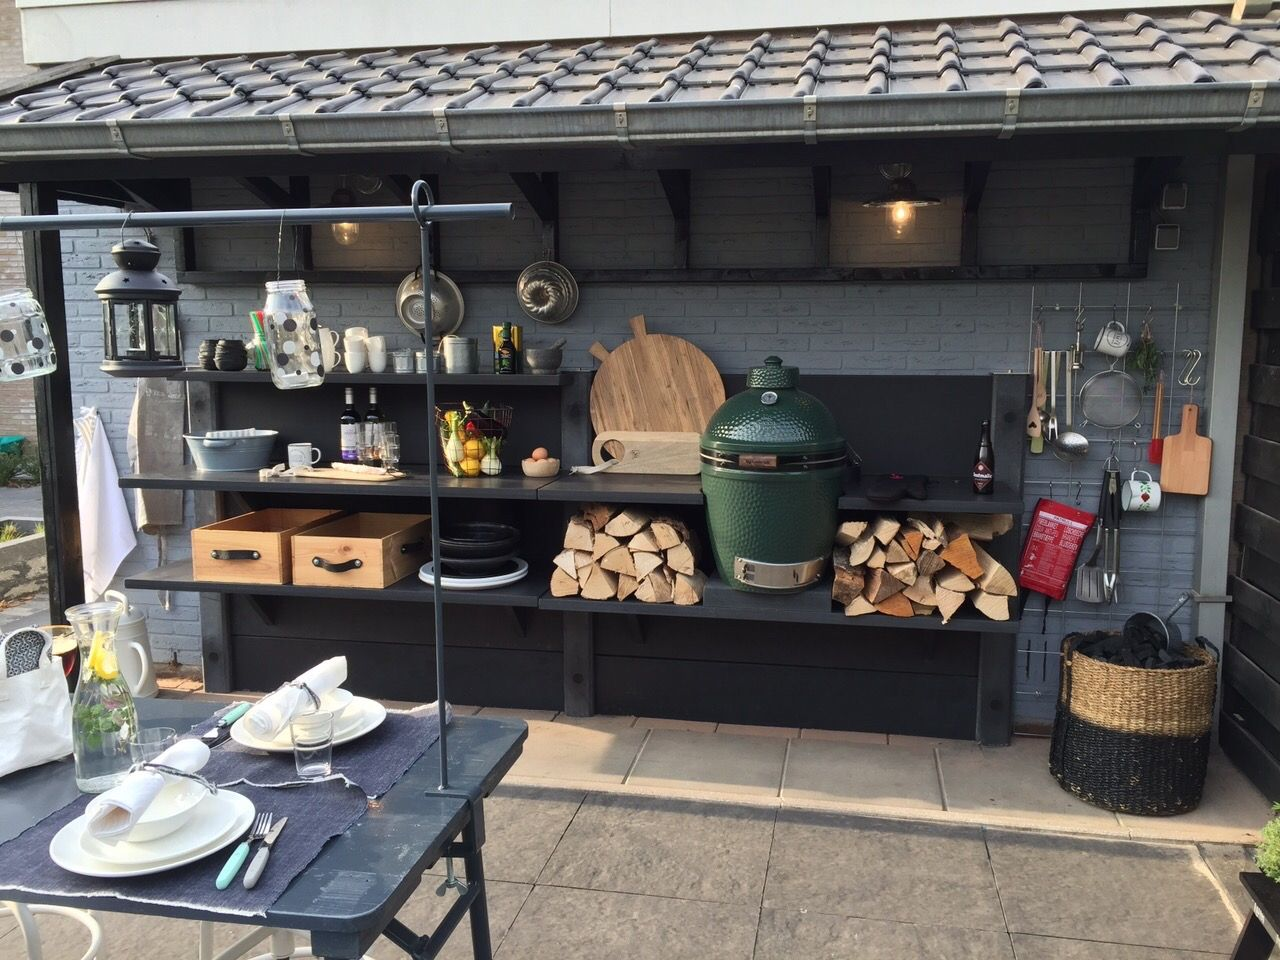 Wwoo Outdoor Kitchen Www Wwoo Nl Outdoor Küche Garten Küche Outdoor Grill Küche